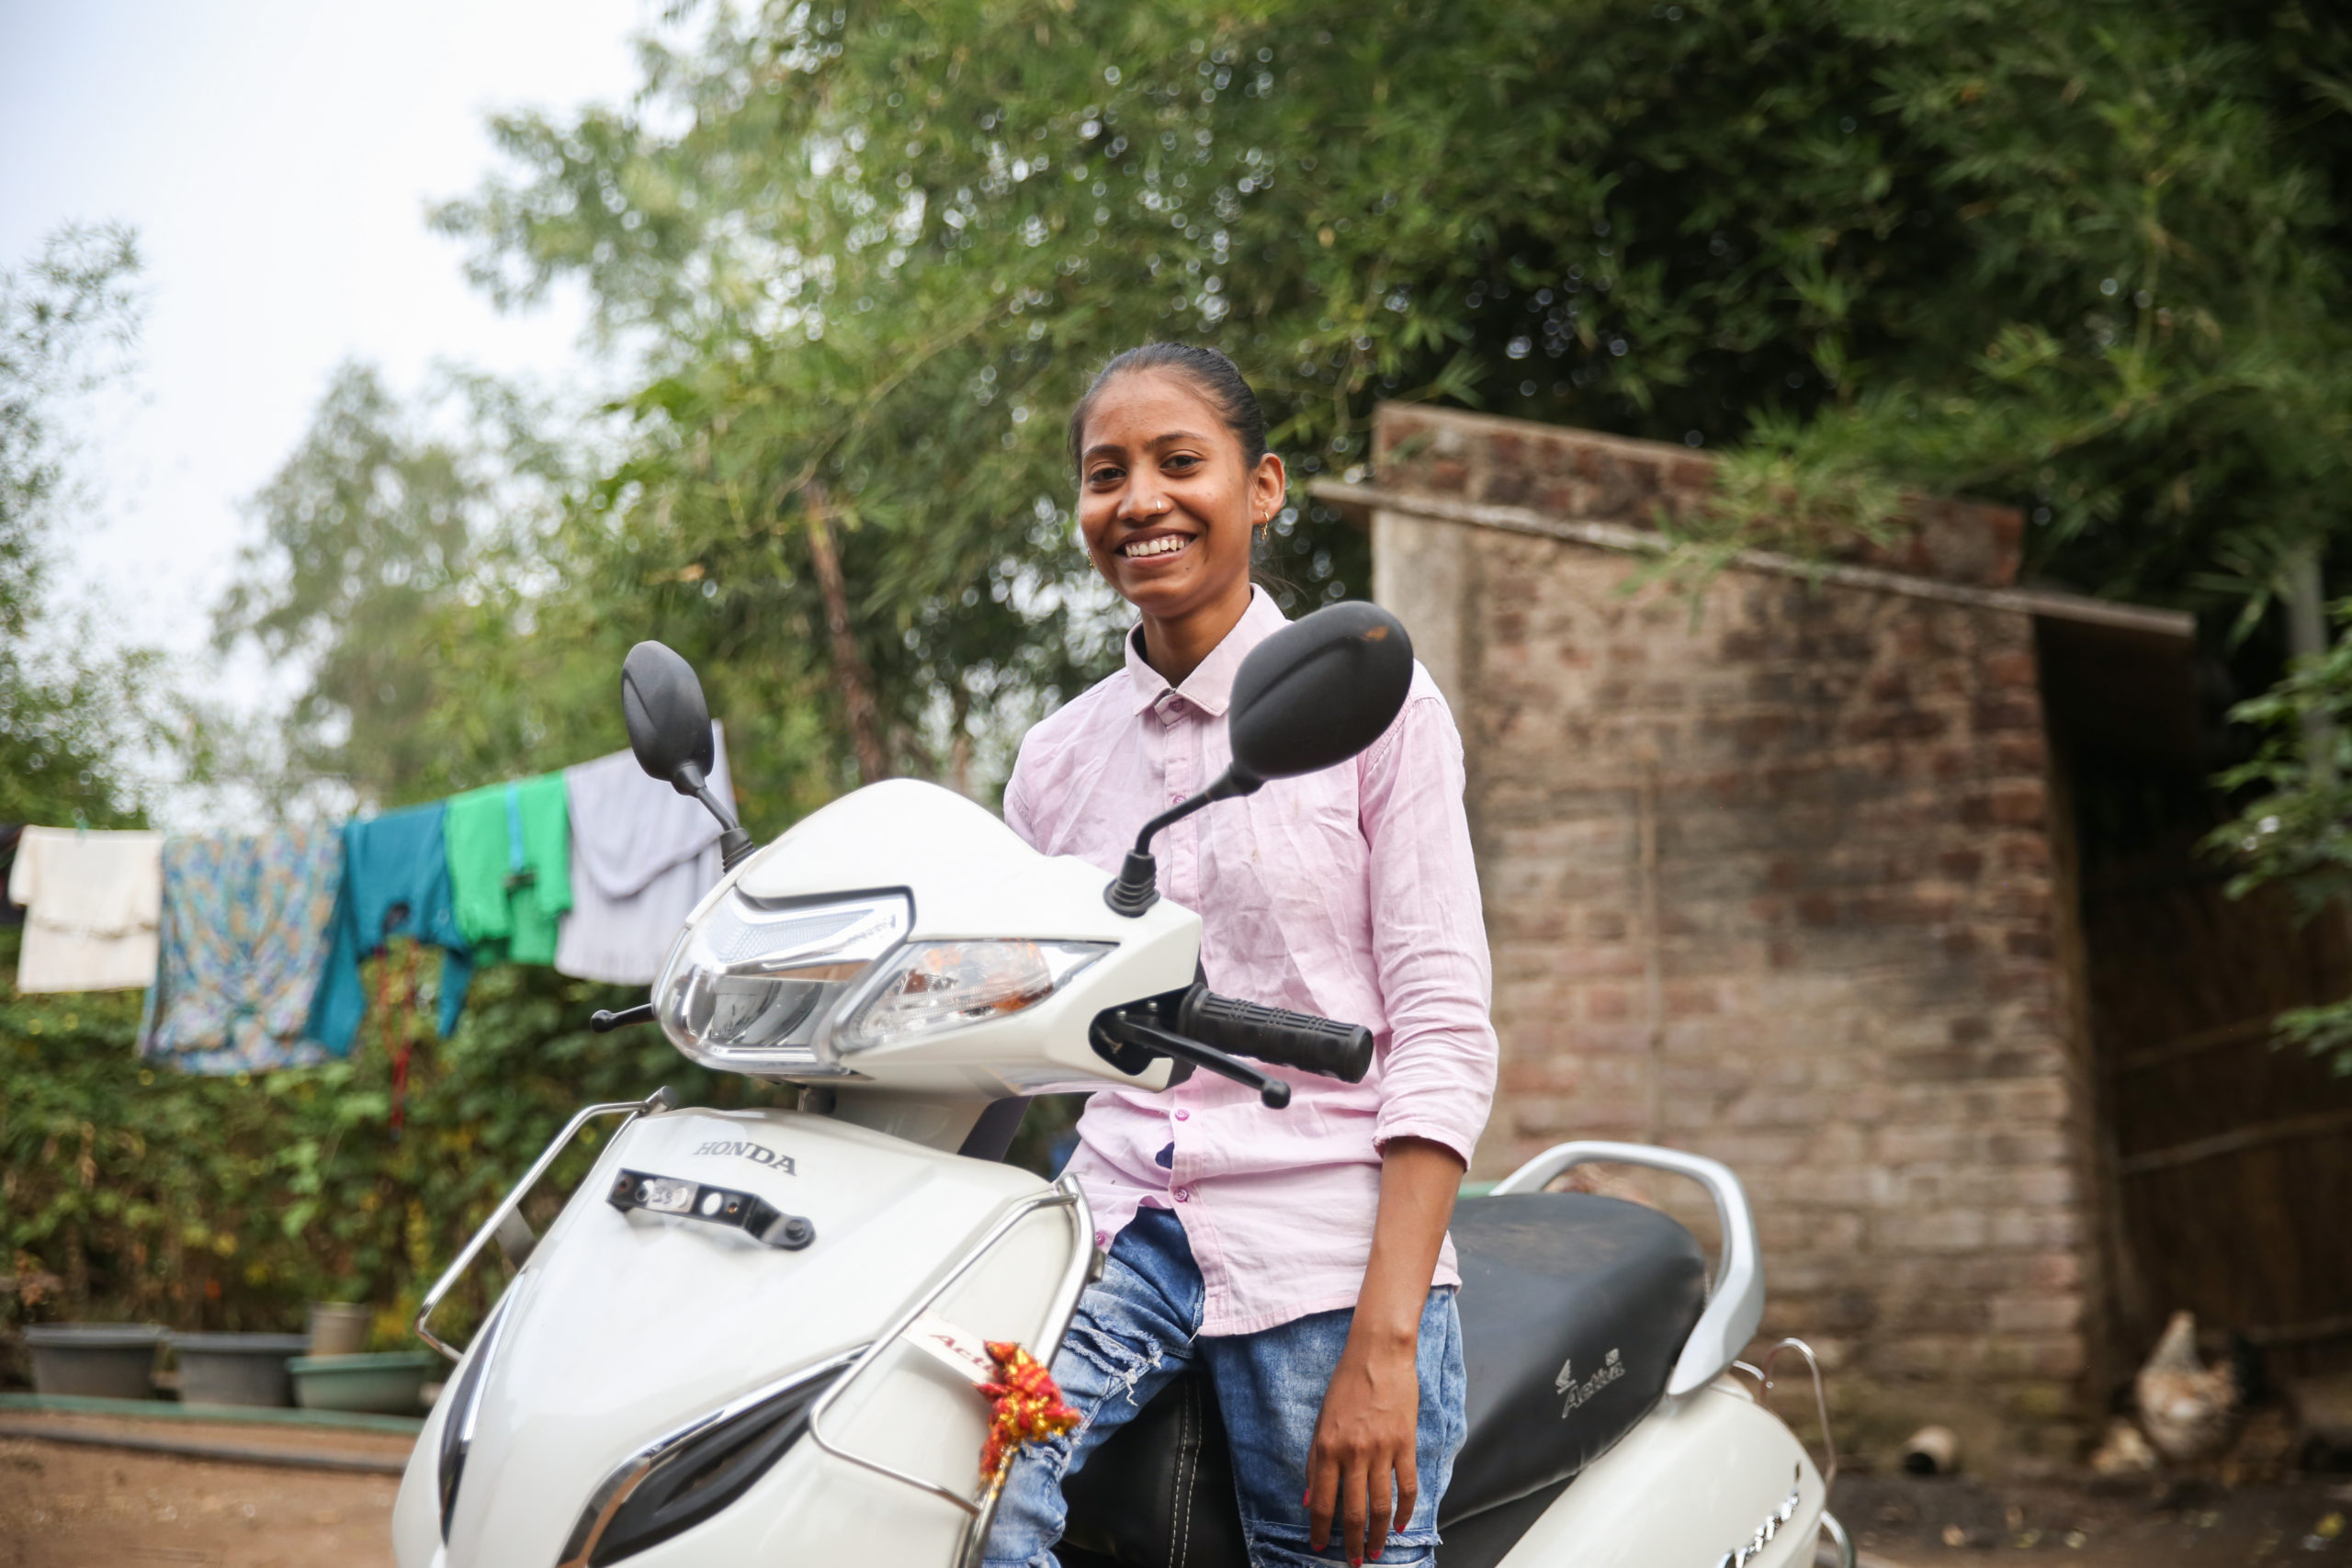 Girl smiles as she sits on a scooter